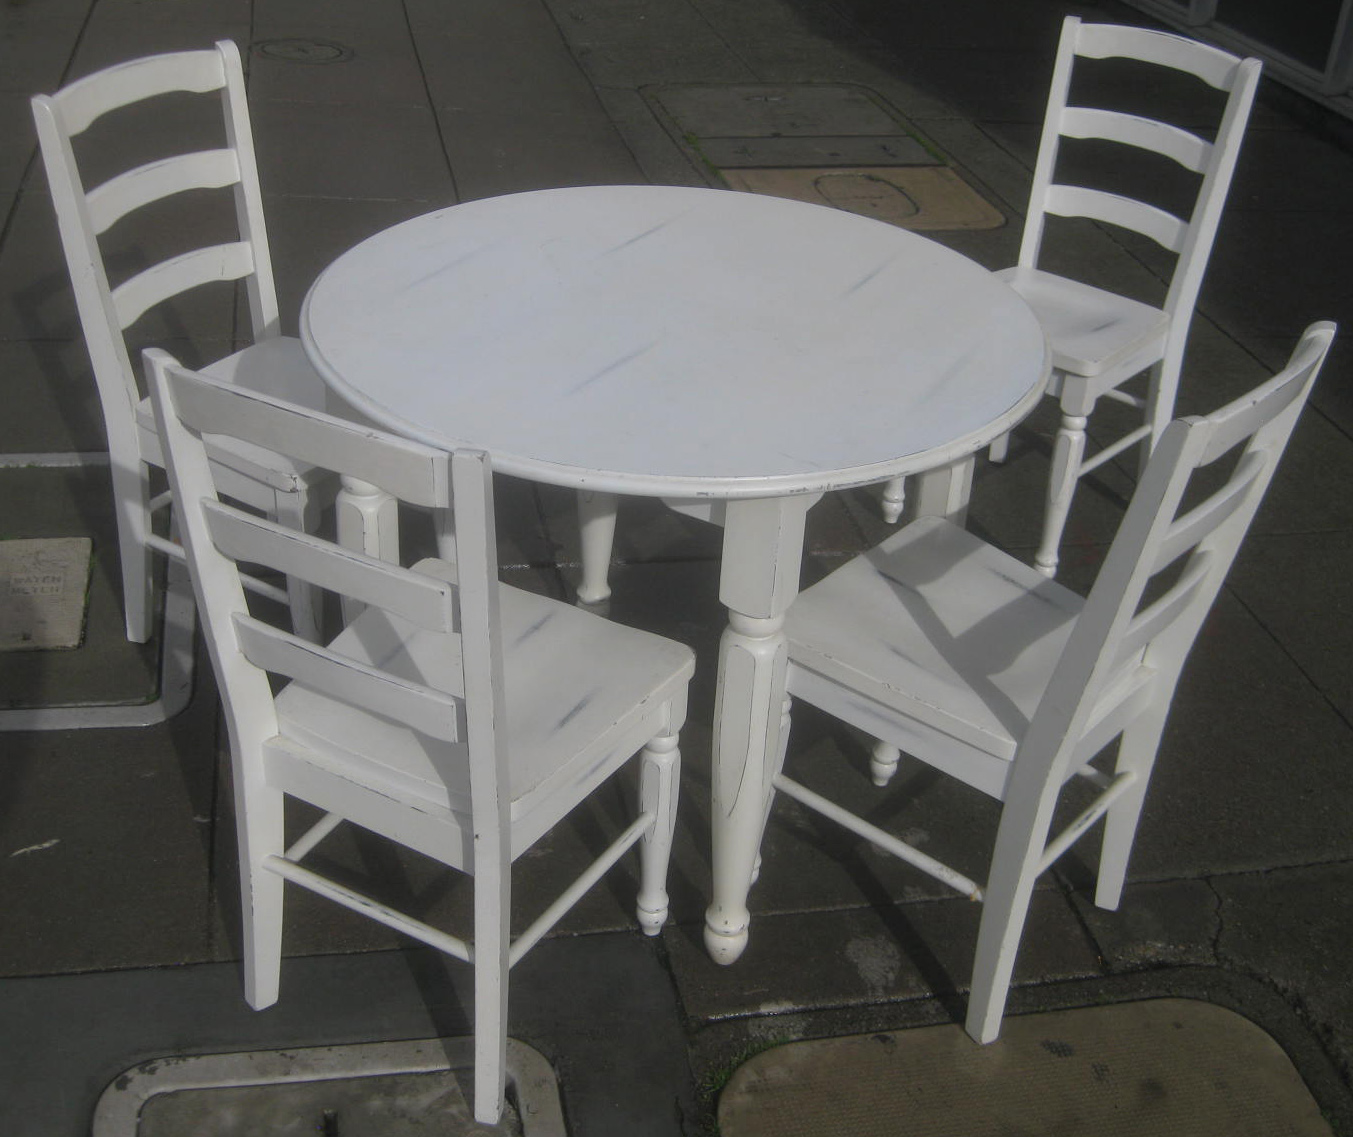 UHURU FURNITURE COLLECTIBLES SOLD Pier 1 Table And